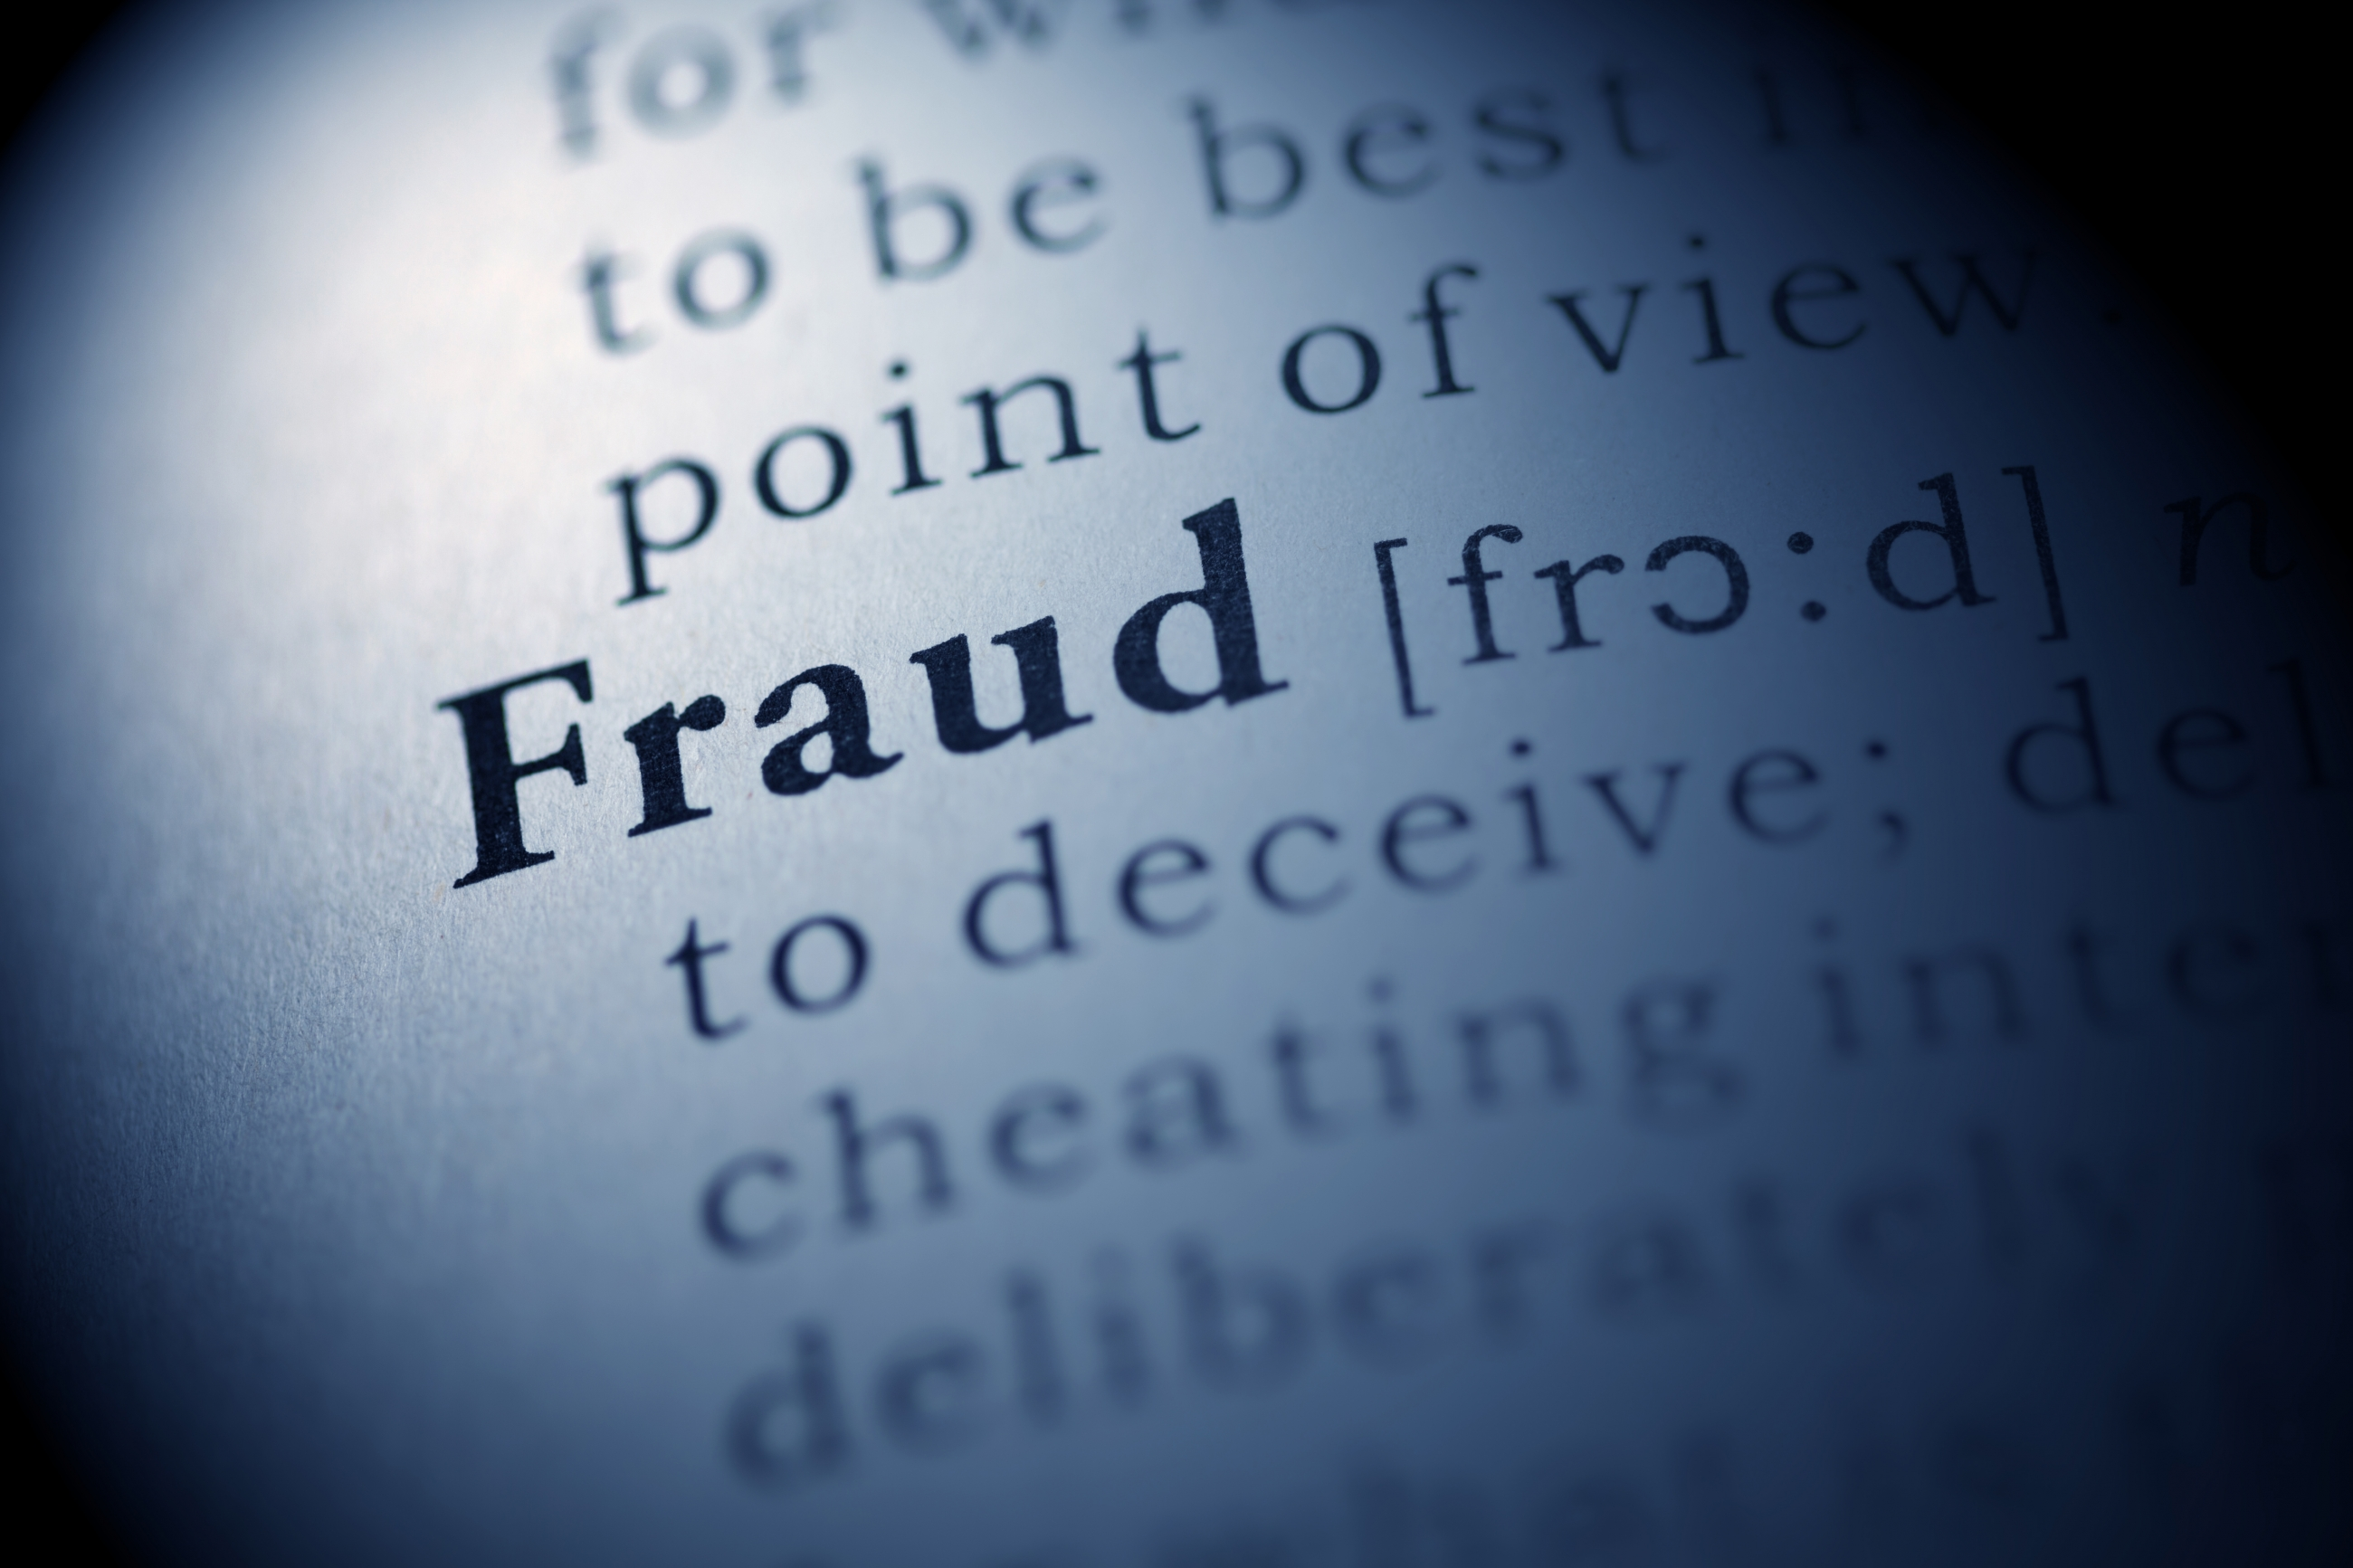 National health care fraud take down includes Louisville cases